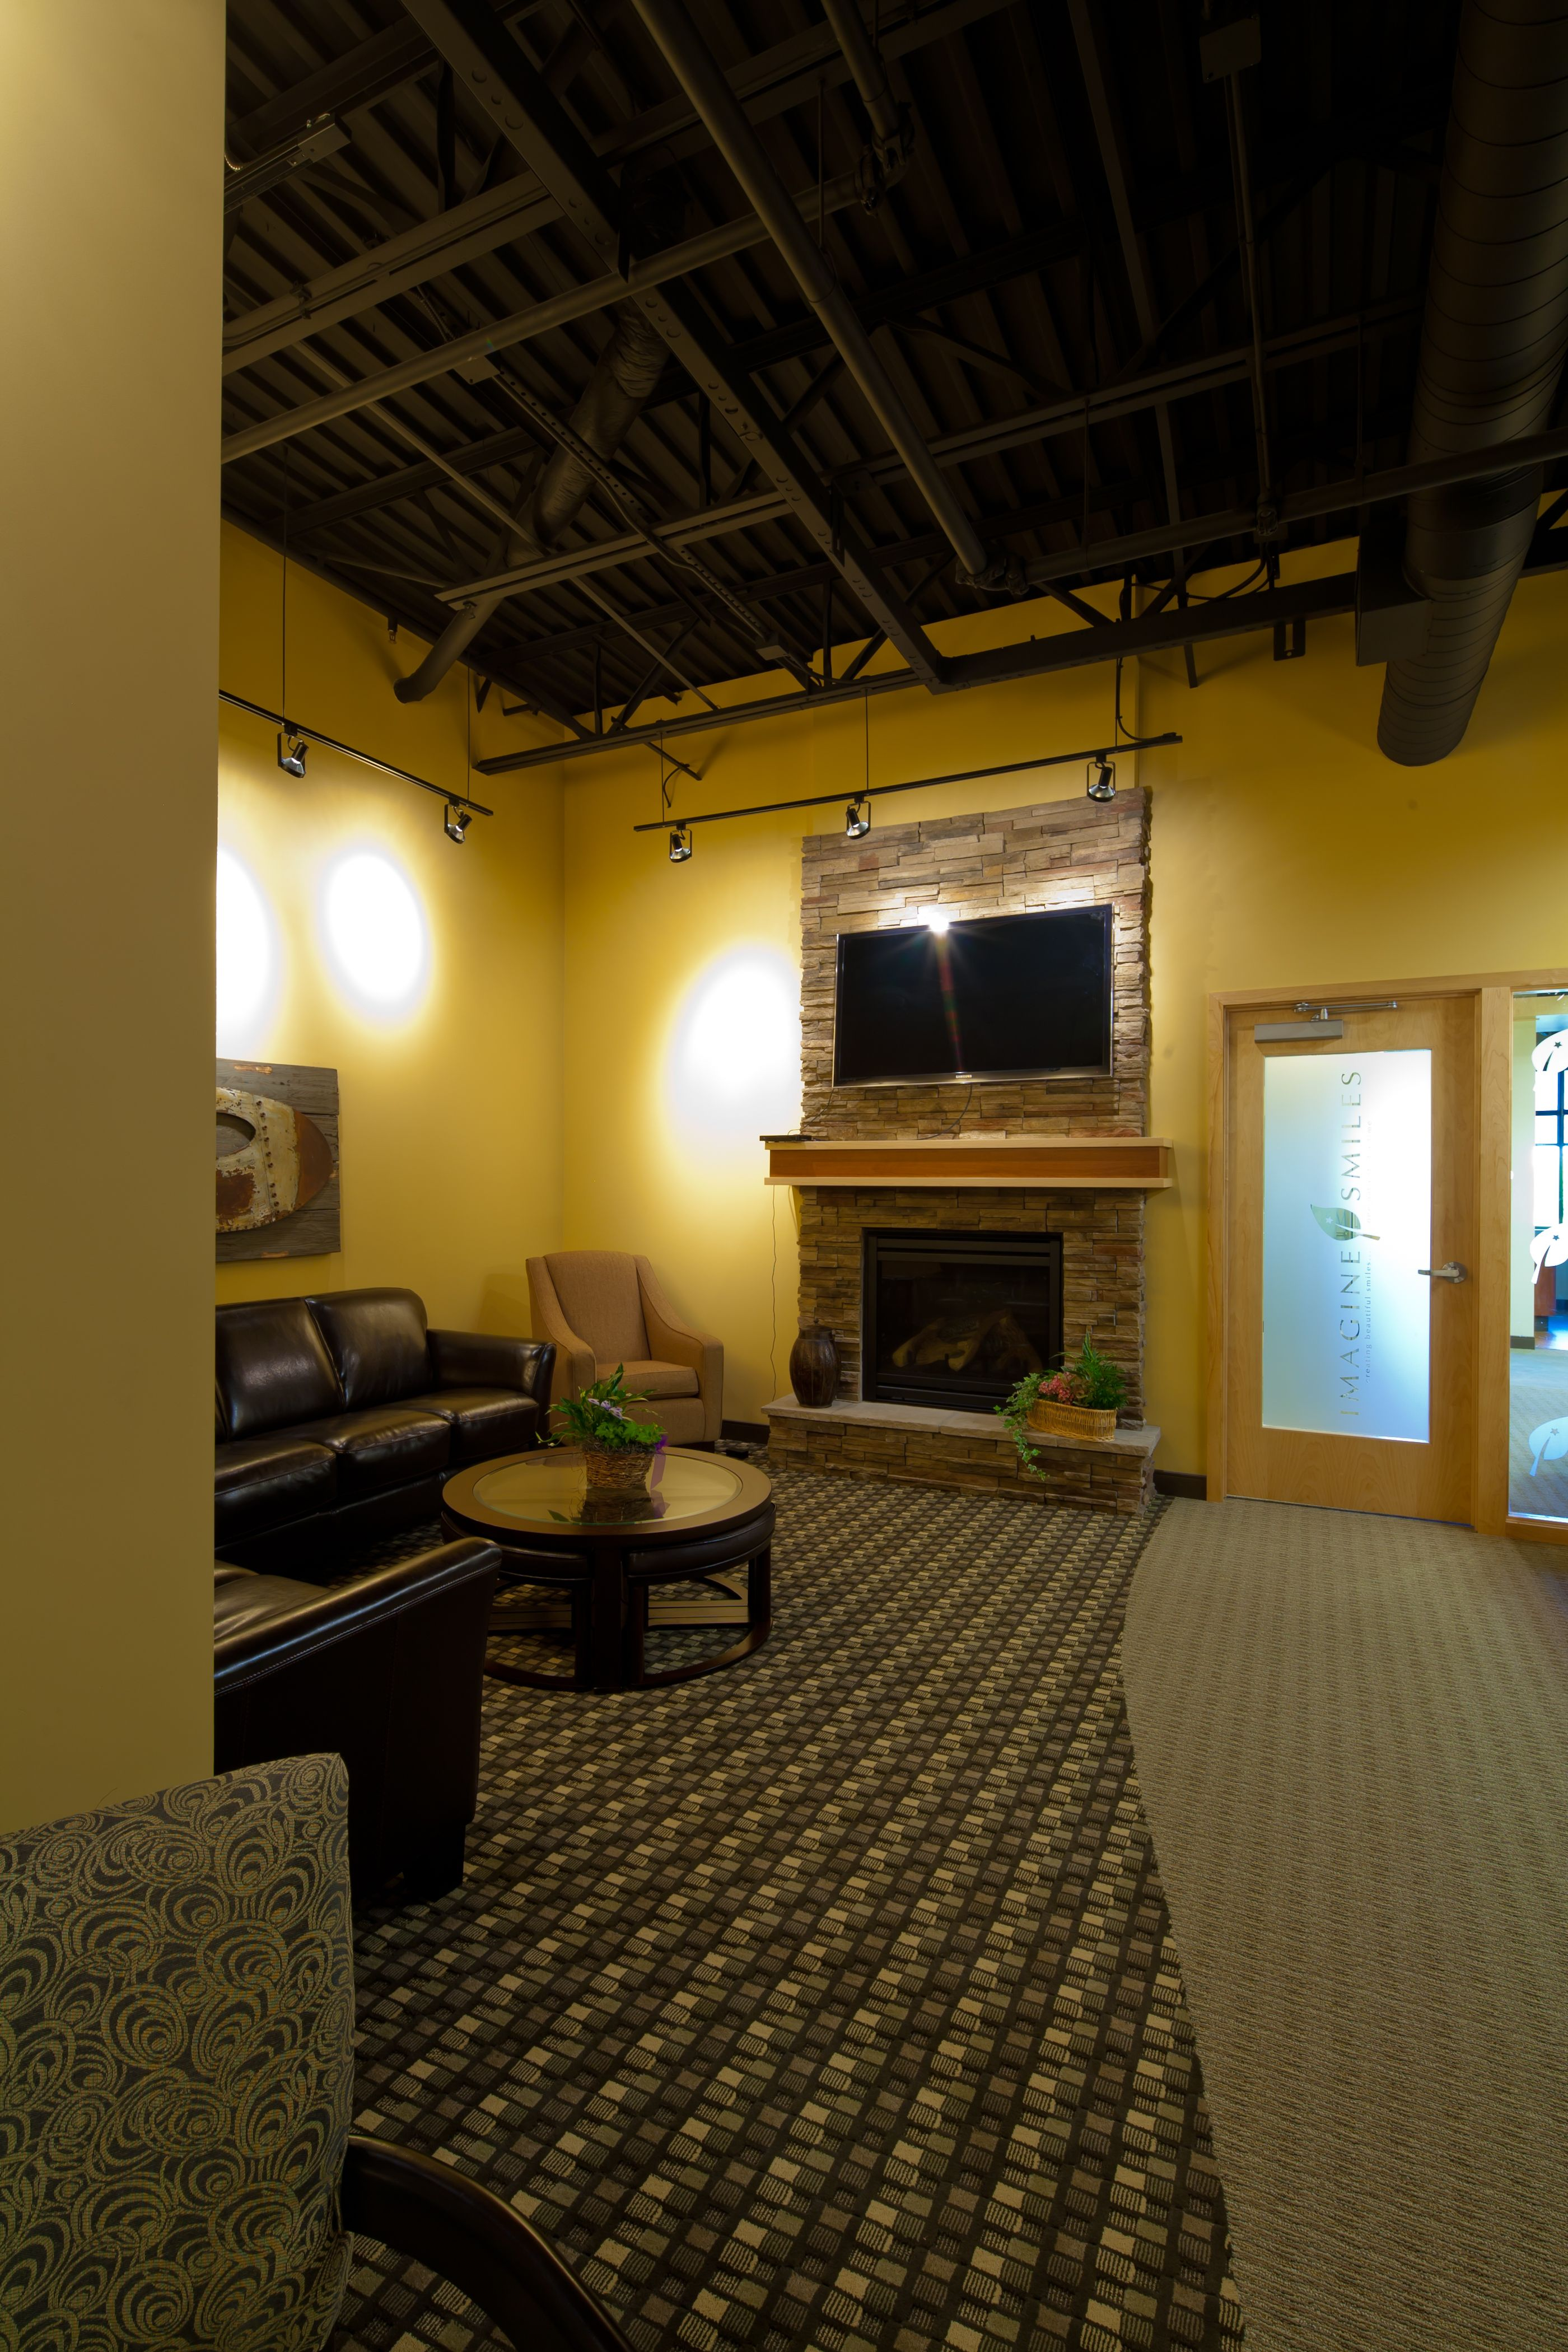 Open Stone Fireplace This Dental Office Waiting Room Is Warm And Inviting With A Stone